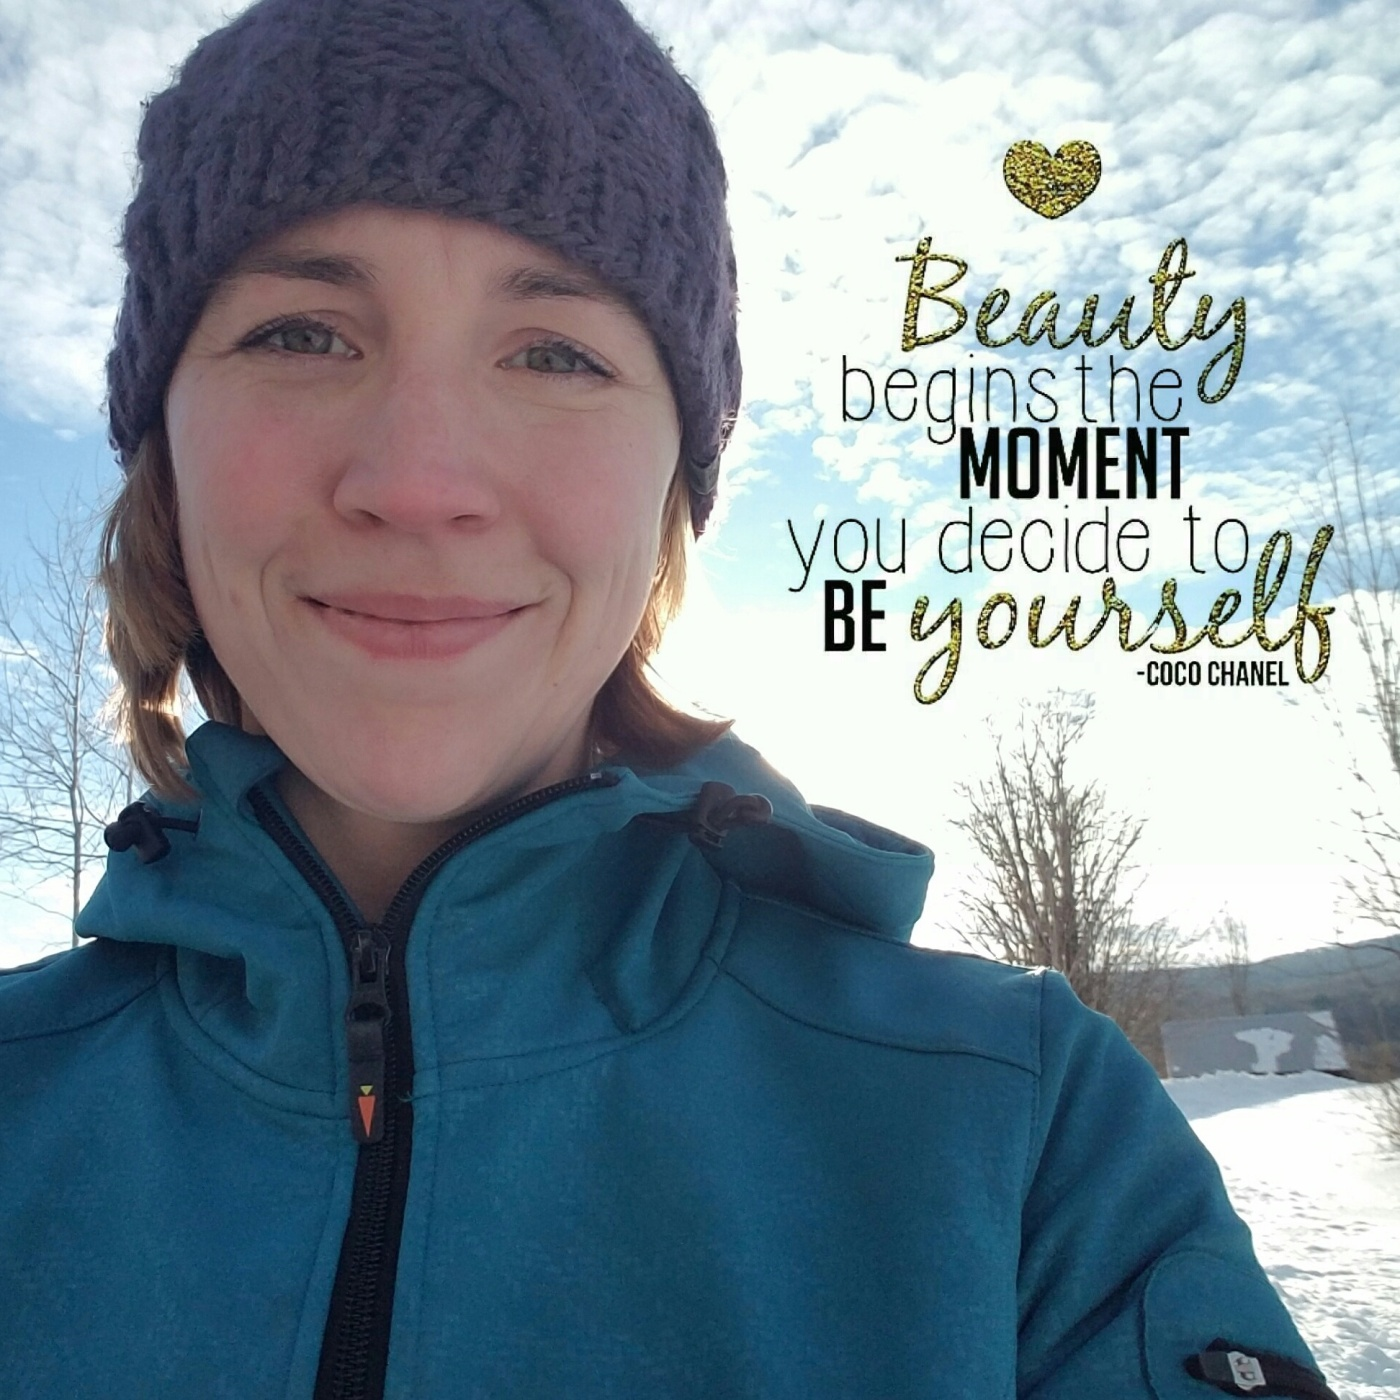 Better Beauty Vermont Beauty Begins the moment you decide to be yourself chanel